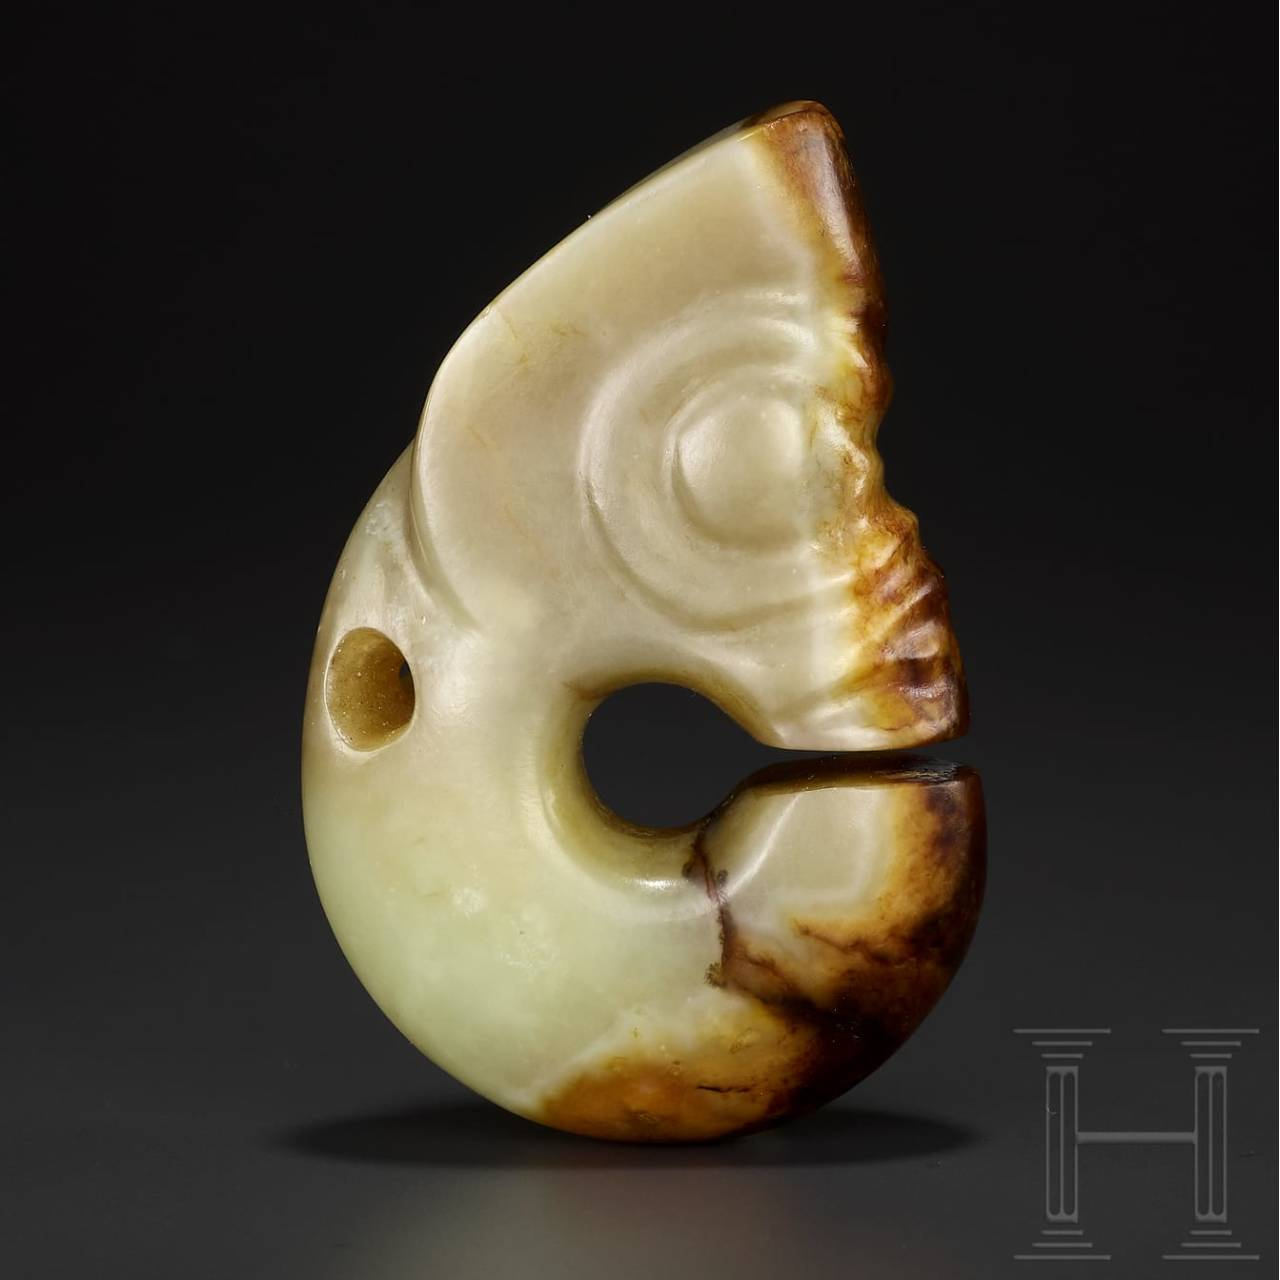 A Northeastern Chinese late Neolithic jade pig dragon (zhulong), Hongshan culture, 4700 - 2900 B.C.